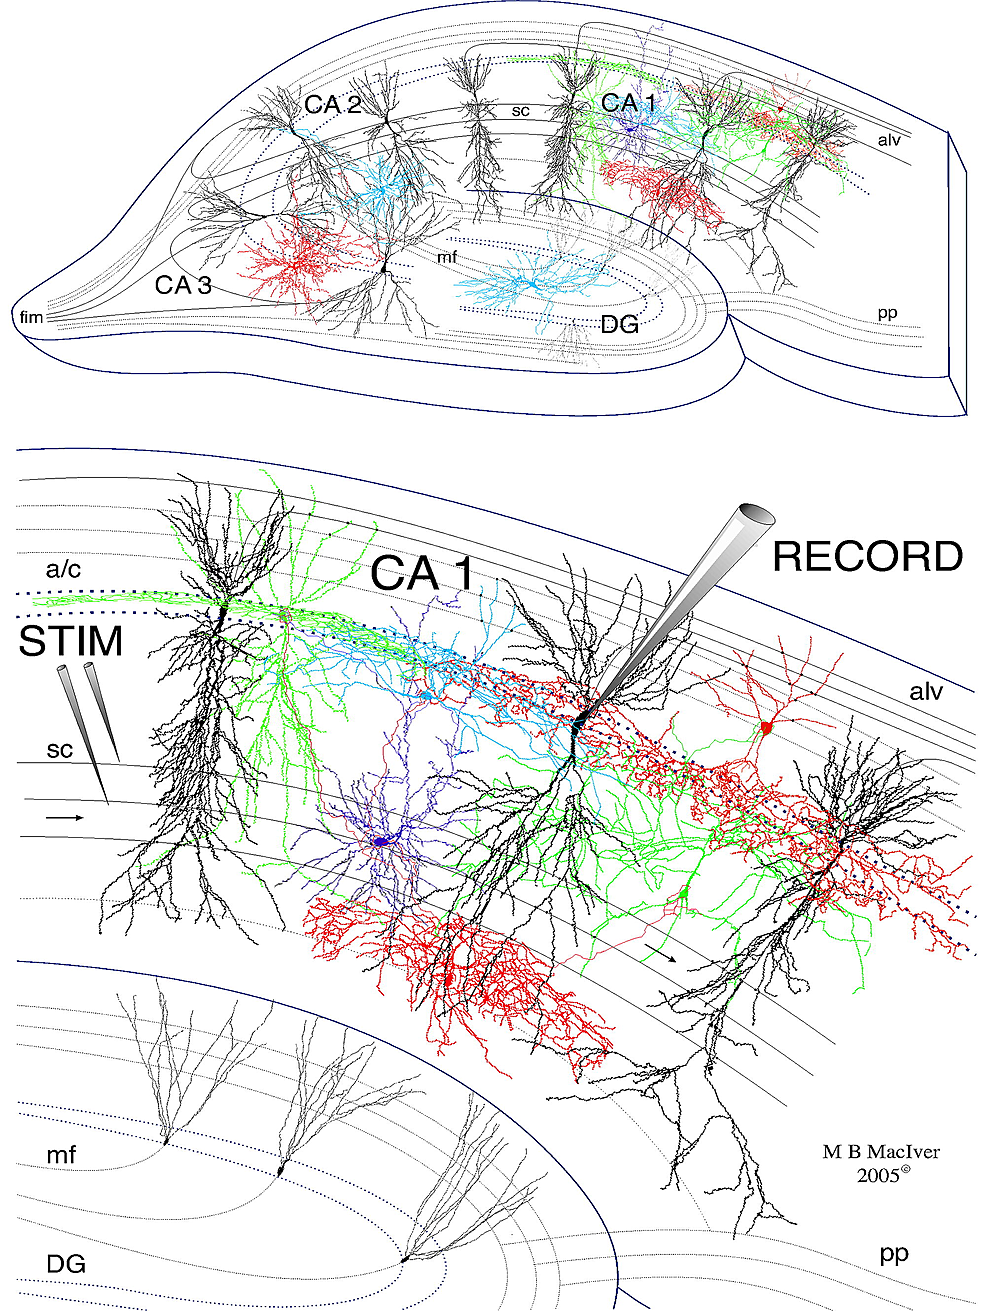 Drawing-of-a-400-µm-thick-rat-hippocampal-slice-used-for-electrophysiological-recordings.